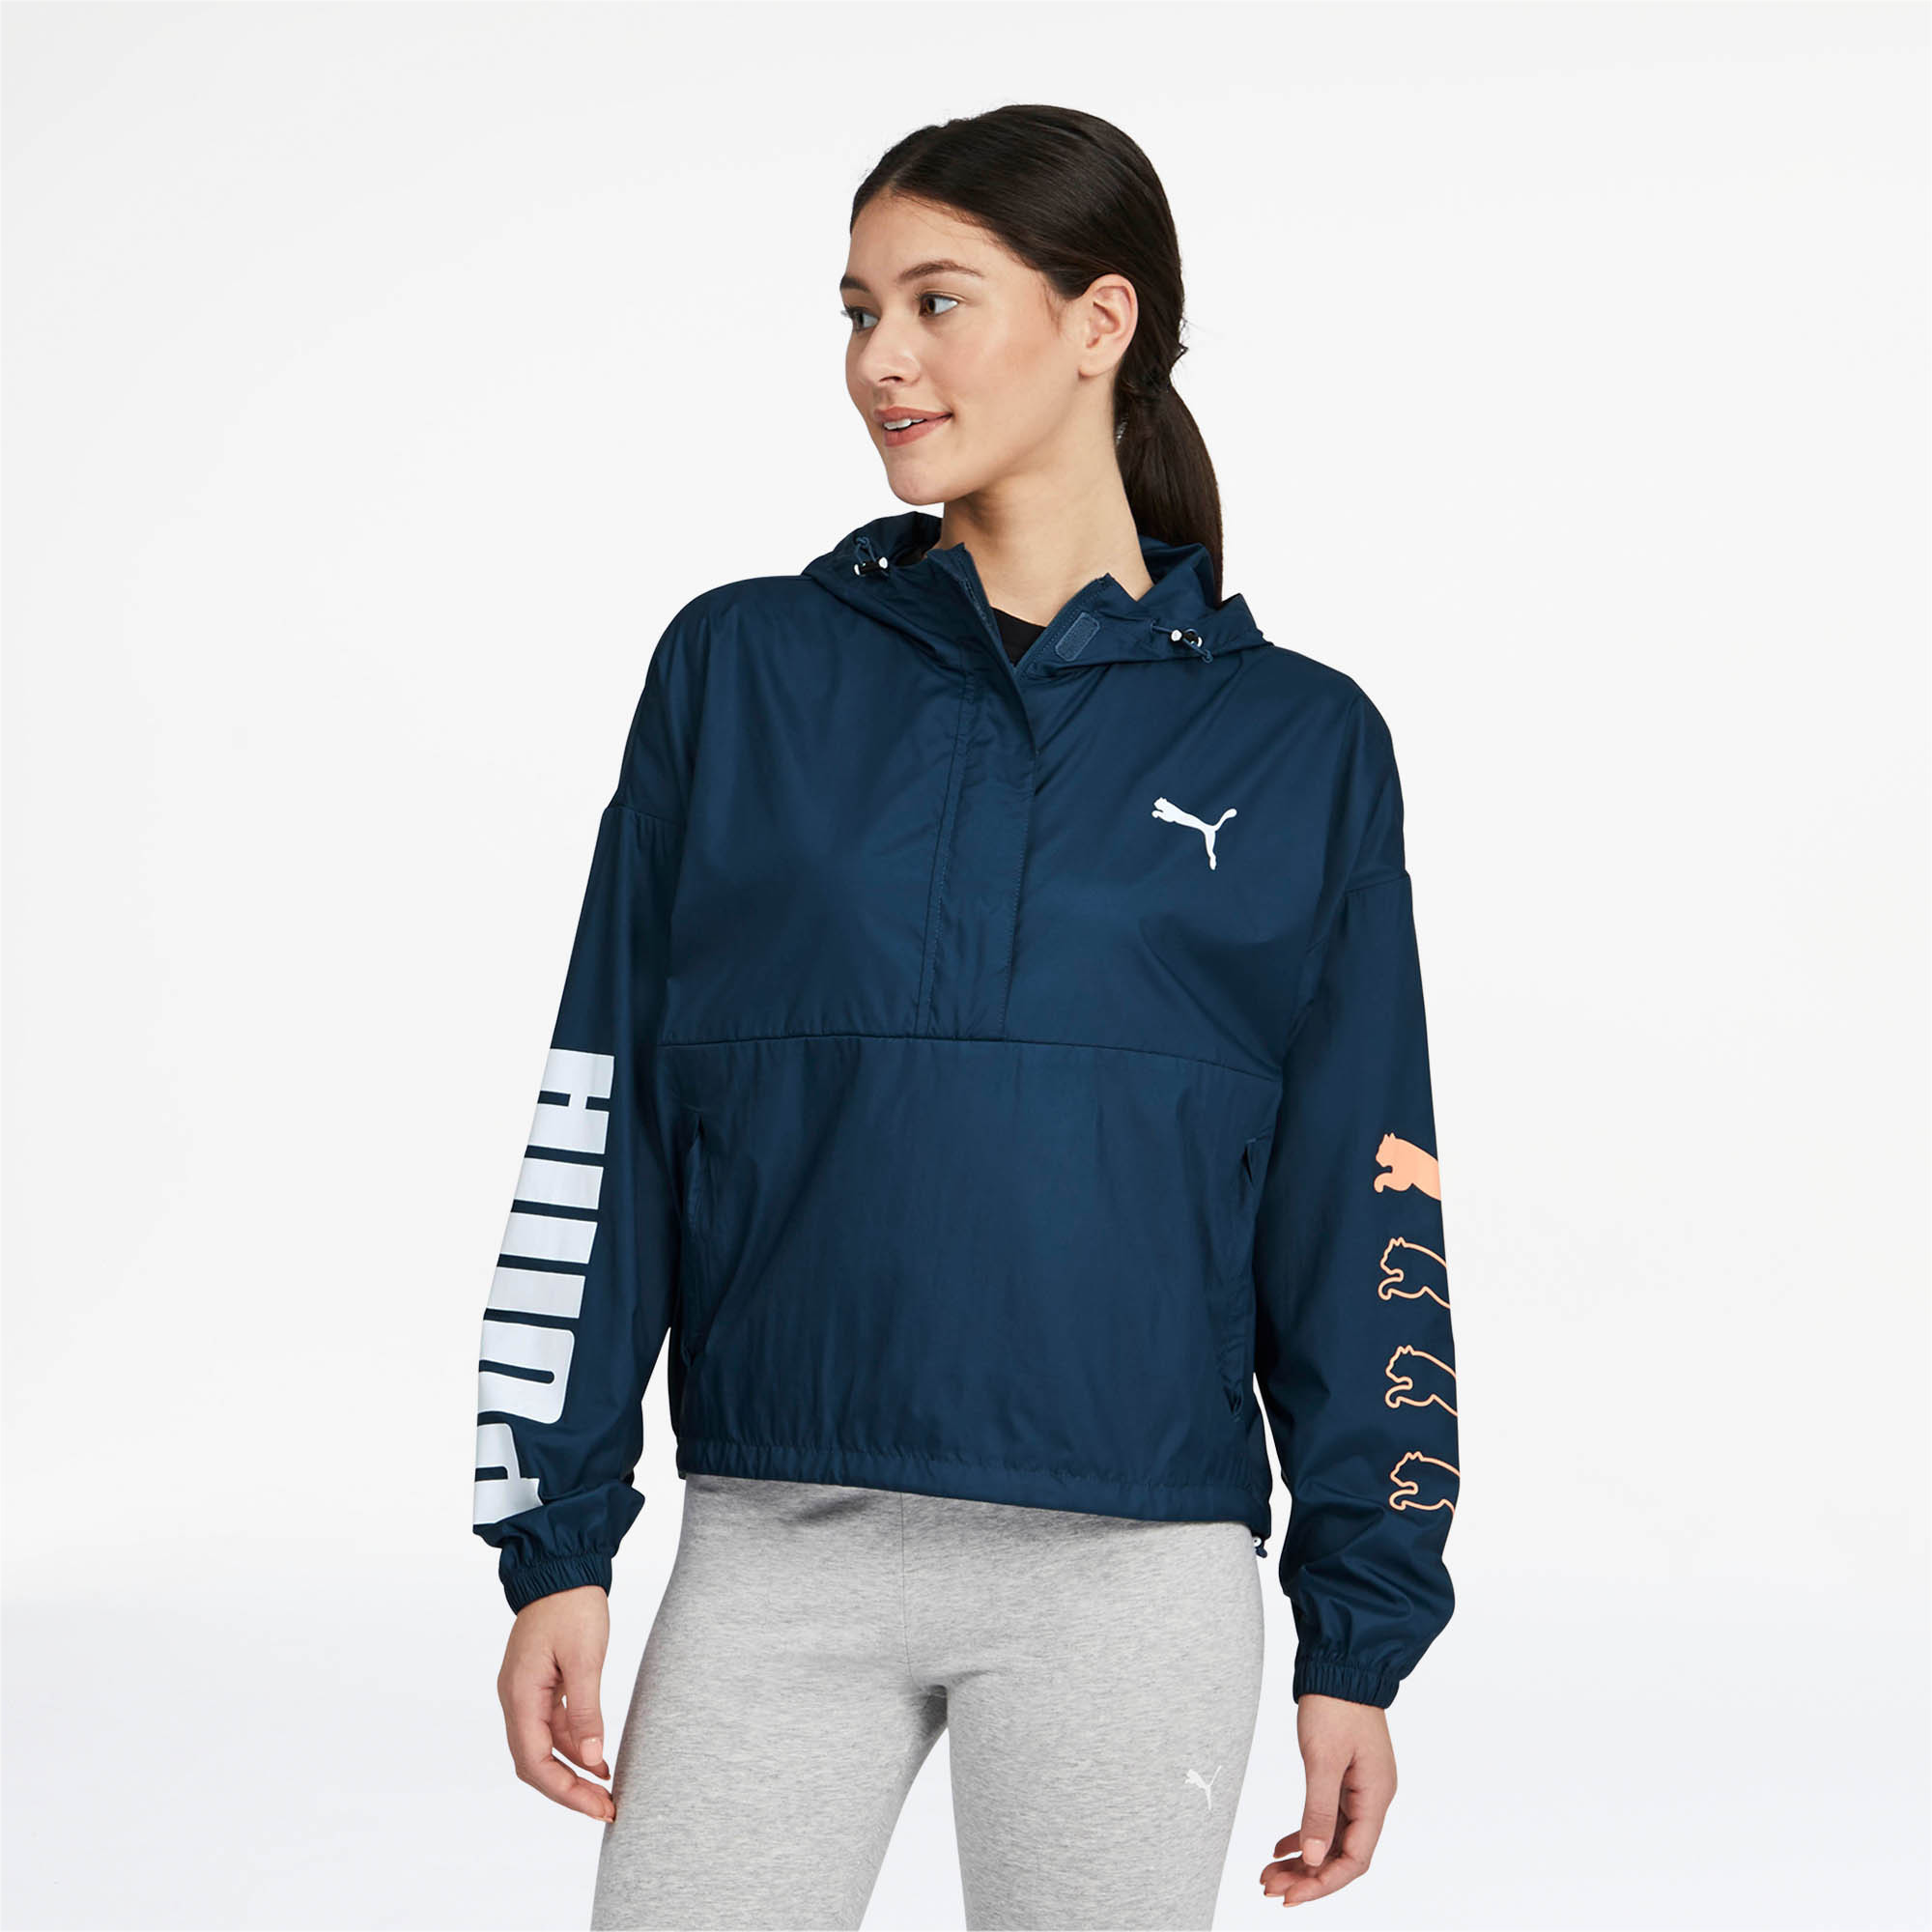 PUMA-Women-039-s-Half-Zip-Windbreaker thumbnail 9